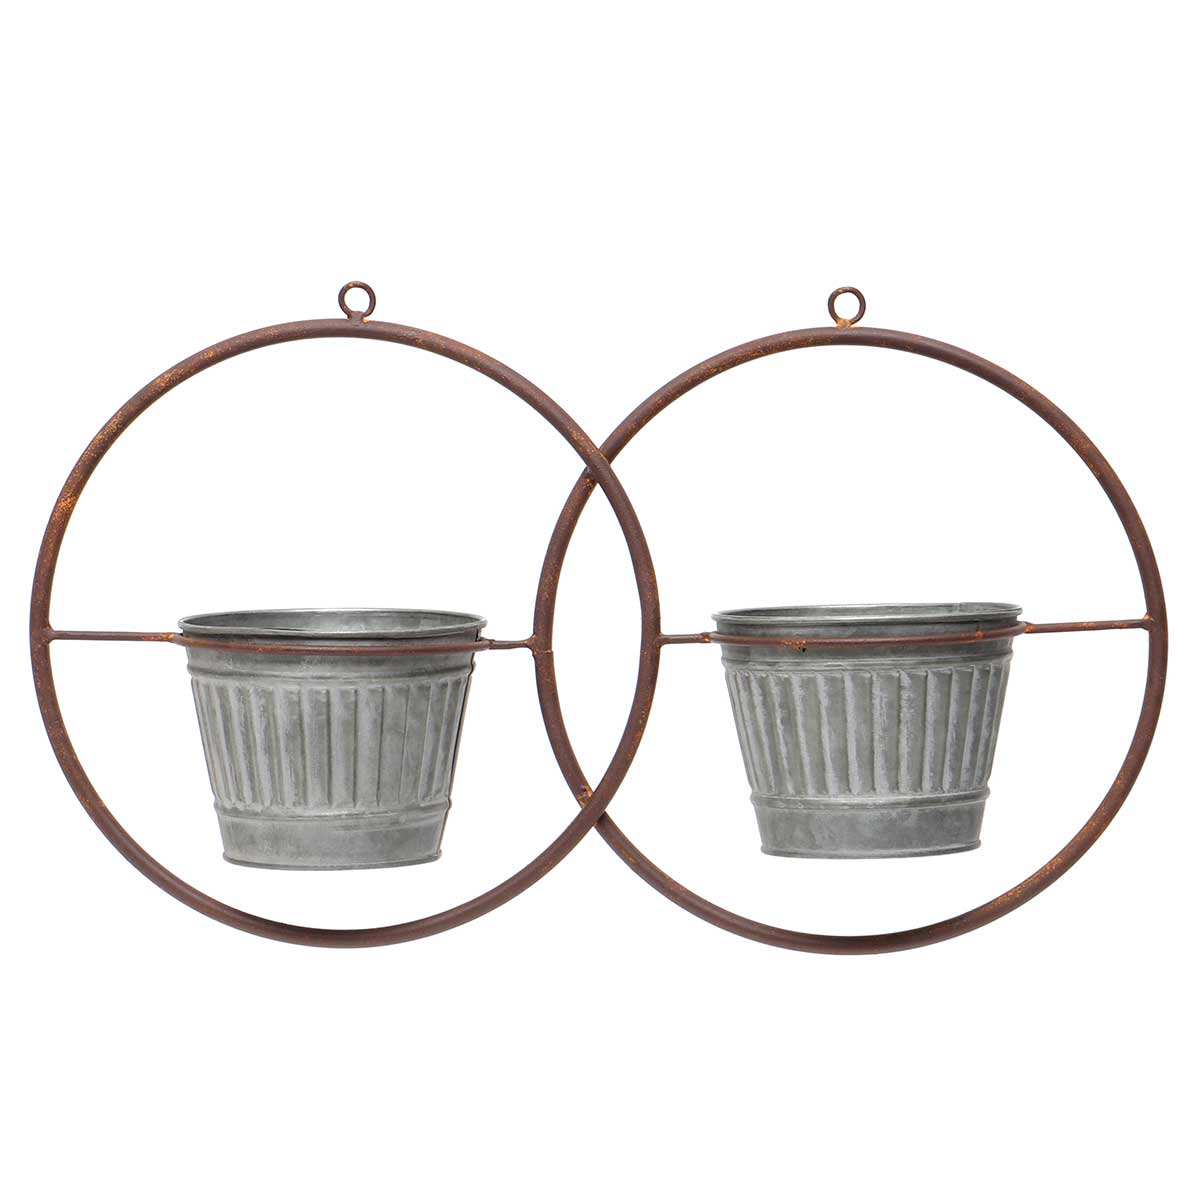 IN BLOOM METAL HANGING DOUBLE CIRCLE PLANTER WITH 2 METAL